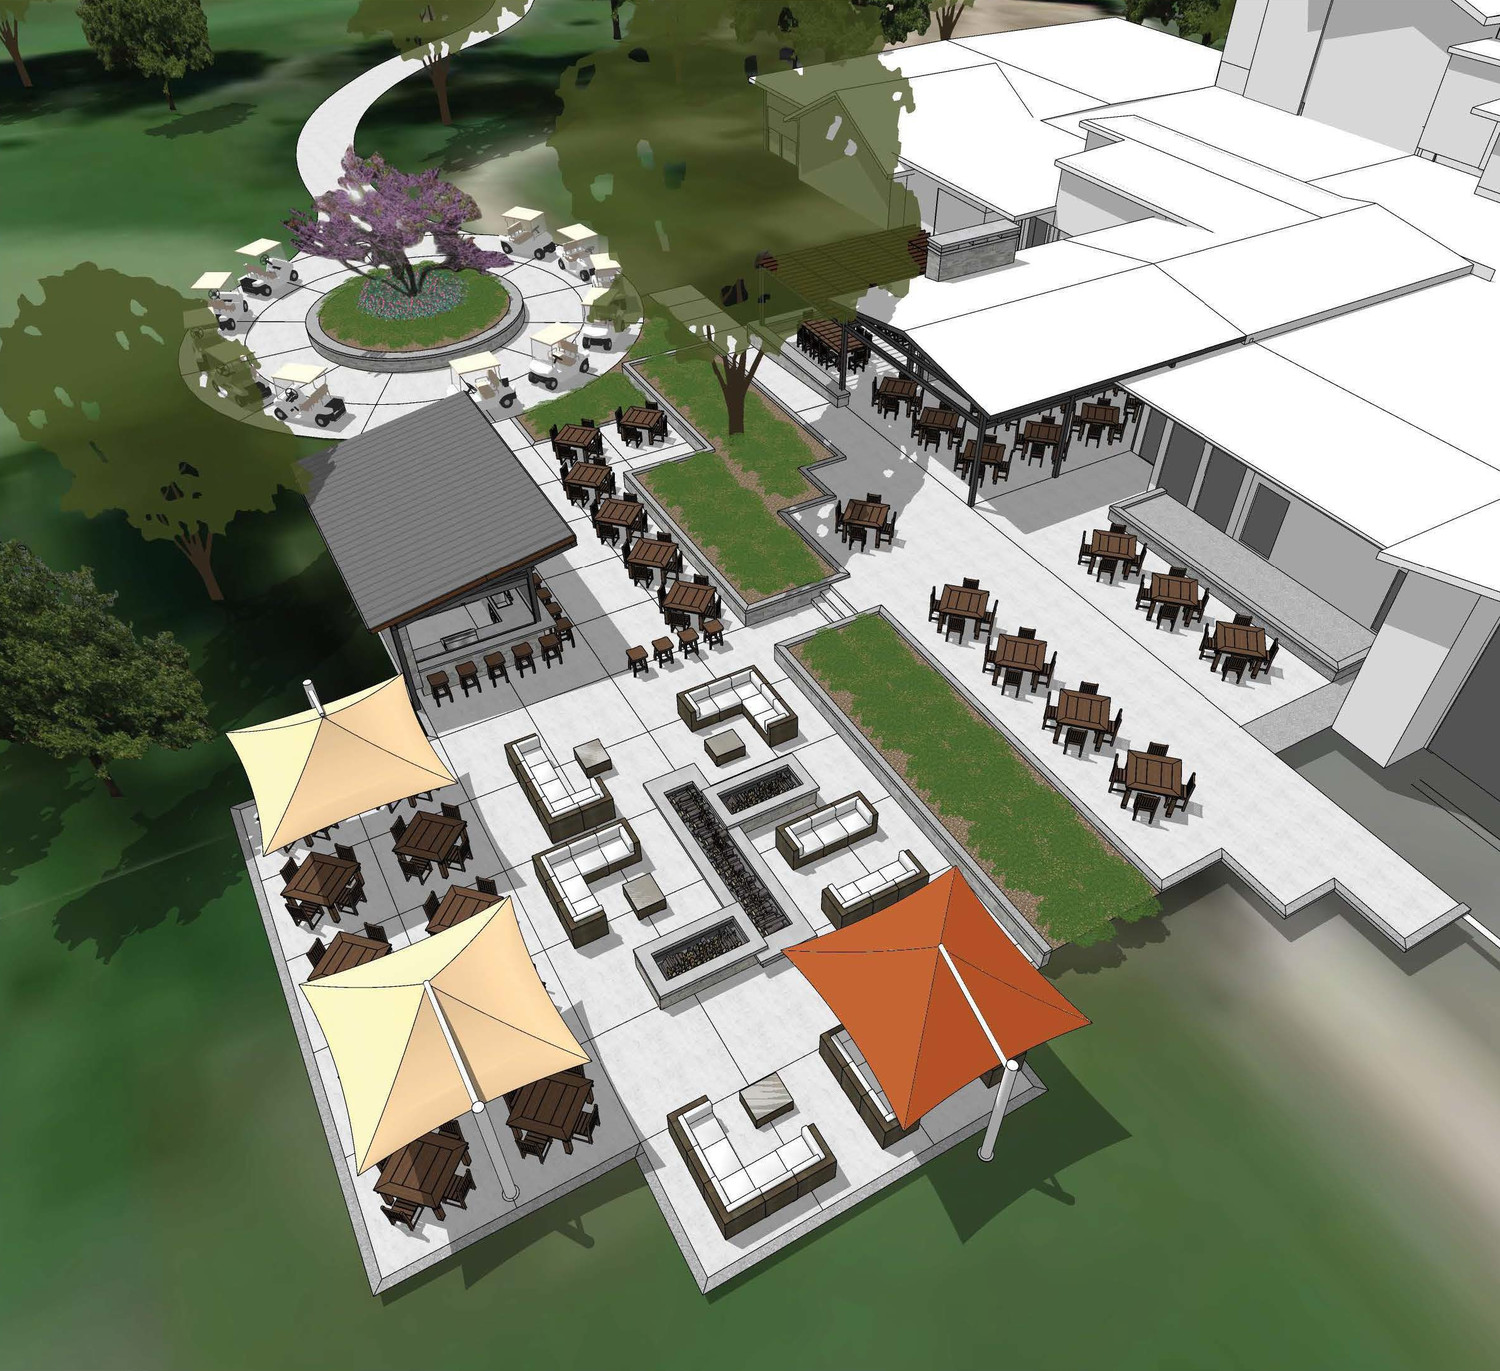 Hickory Hills Country Club plans to overhaul the private facility, with a new three-season patio being among major renovation work.